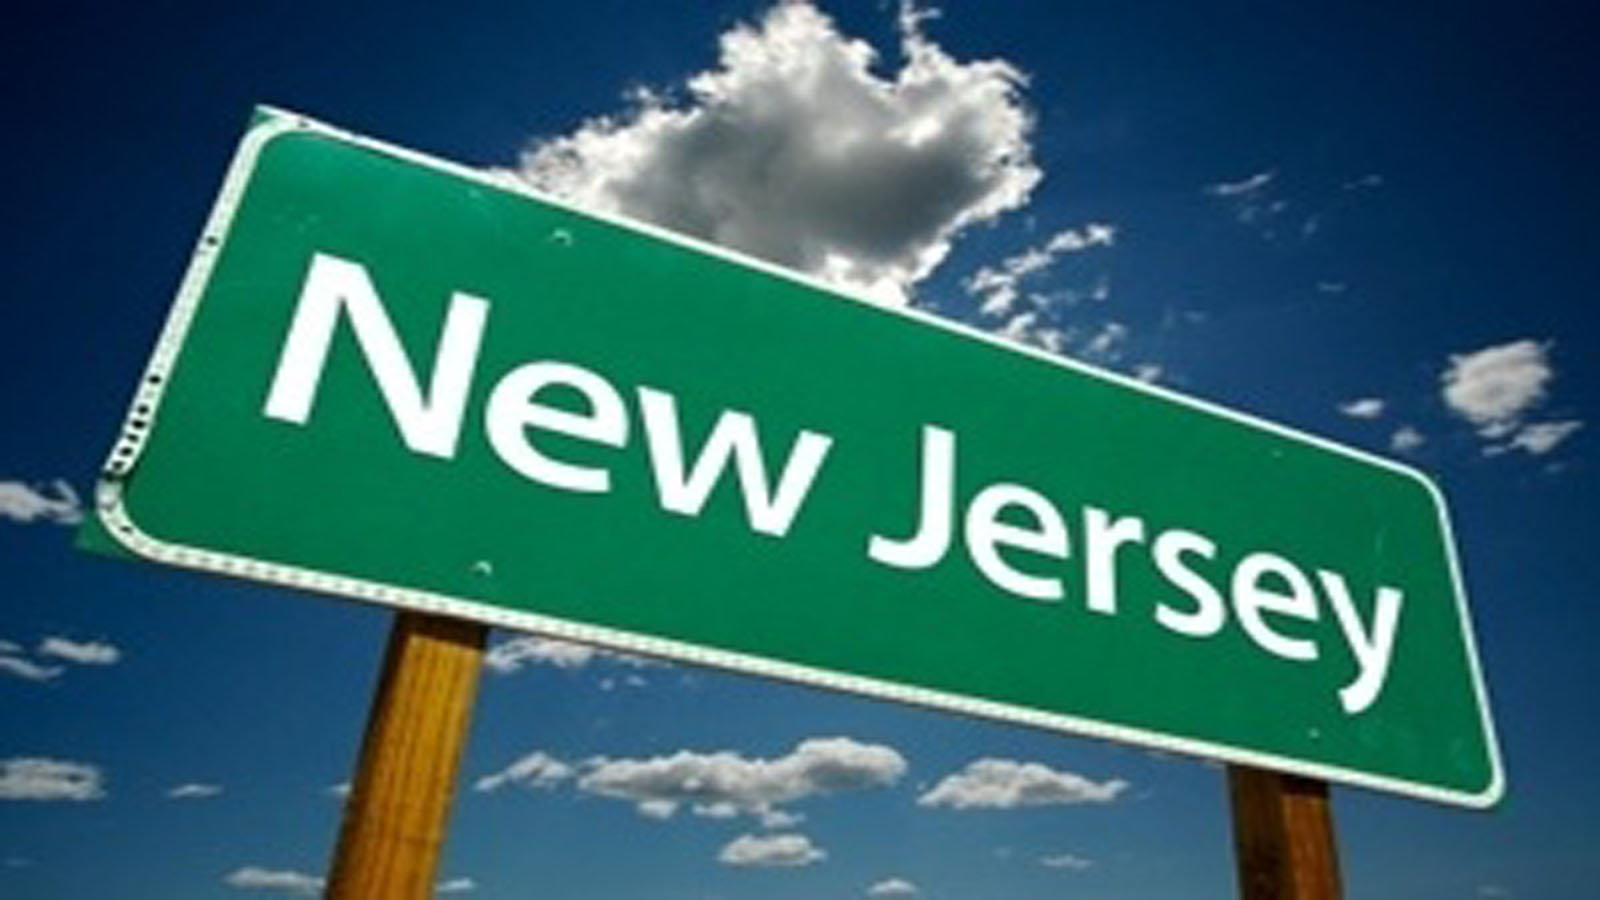 5. New Jersey